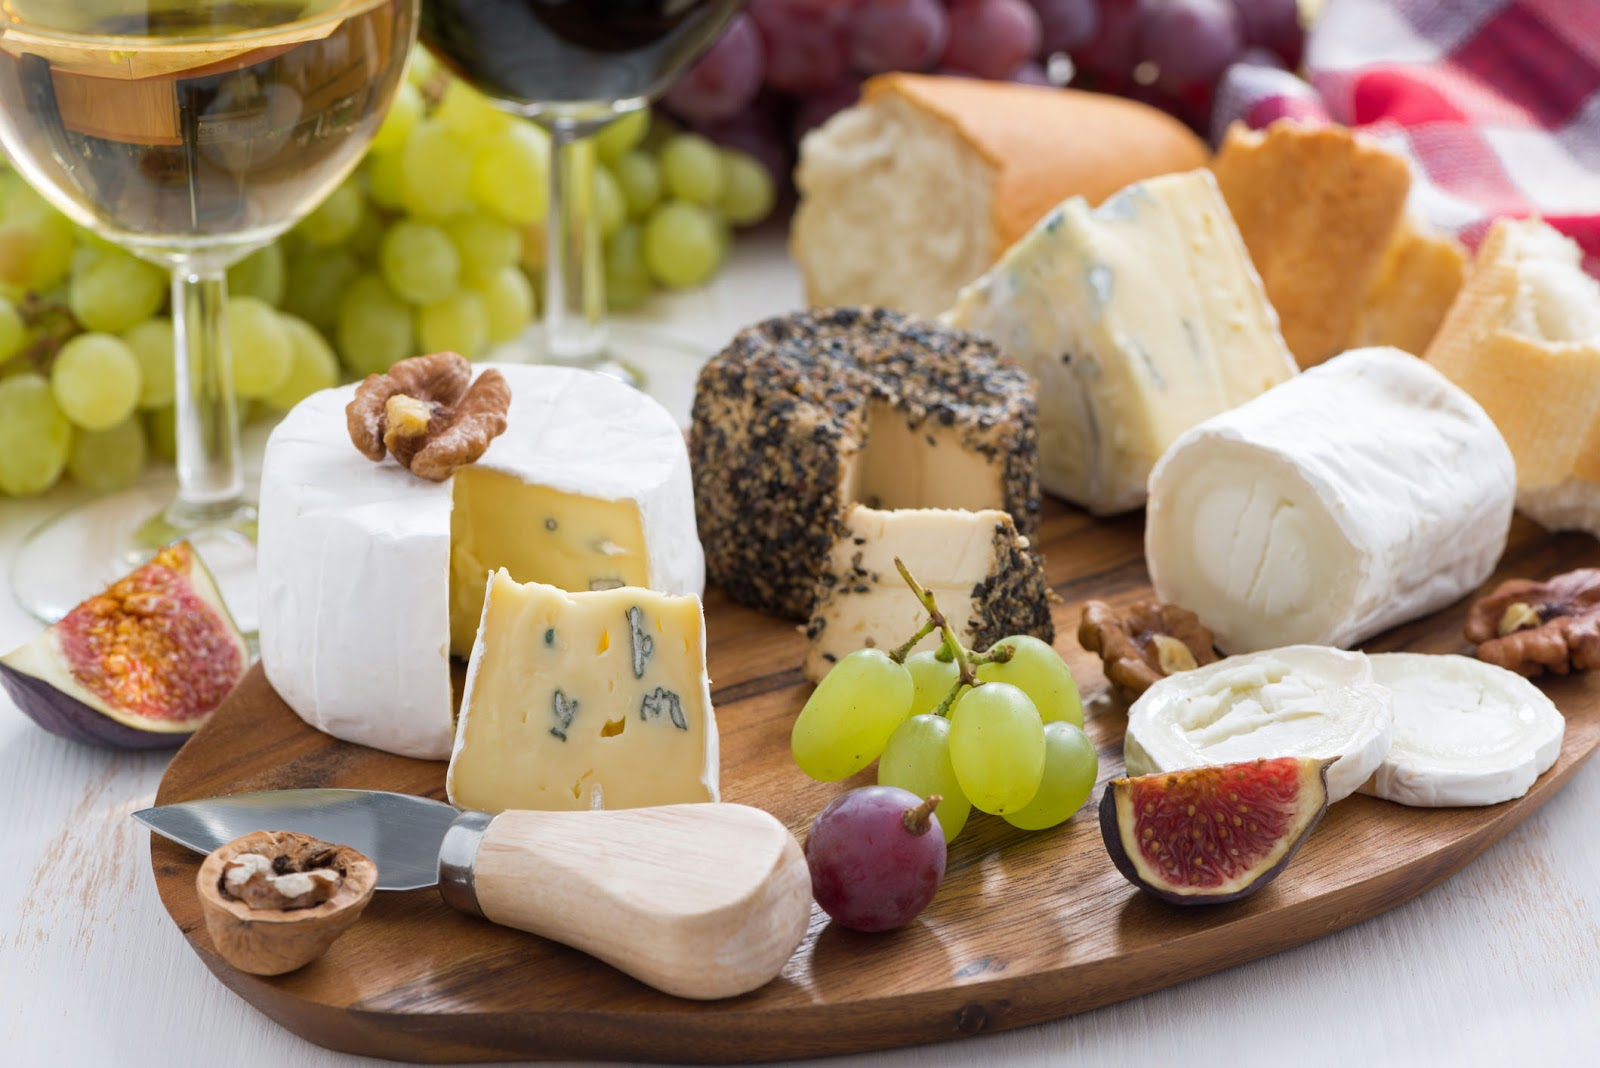 Cheese courses are elegant flavorful and easy to assemble.